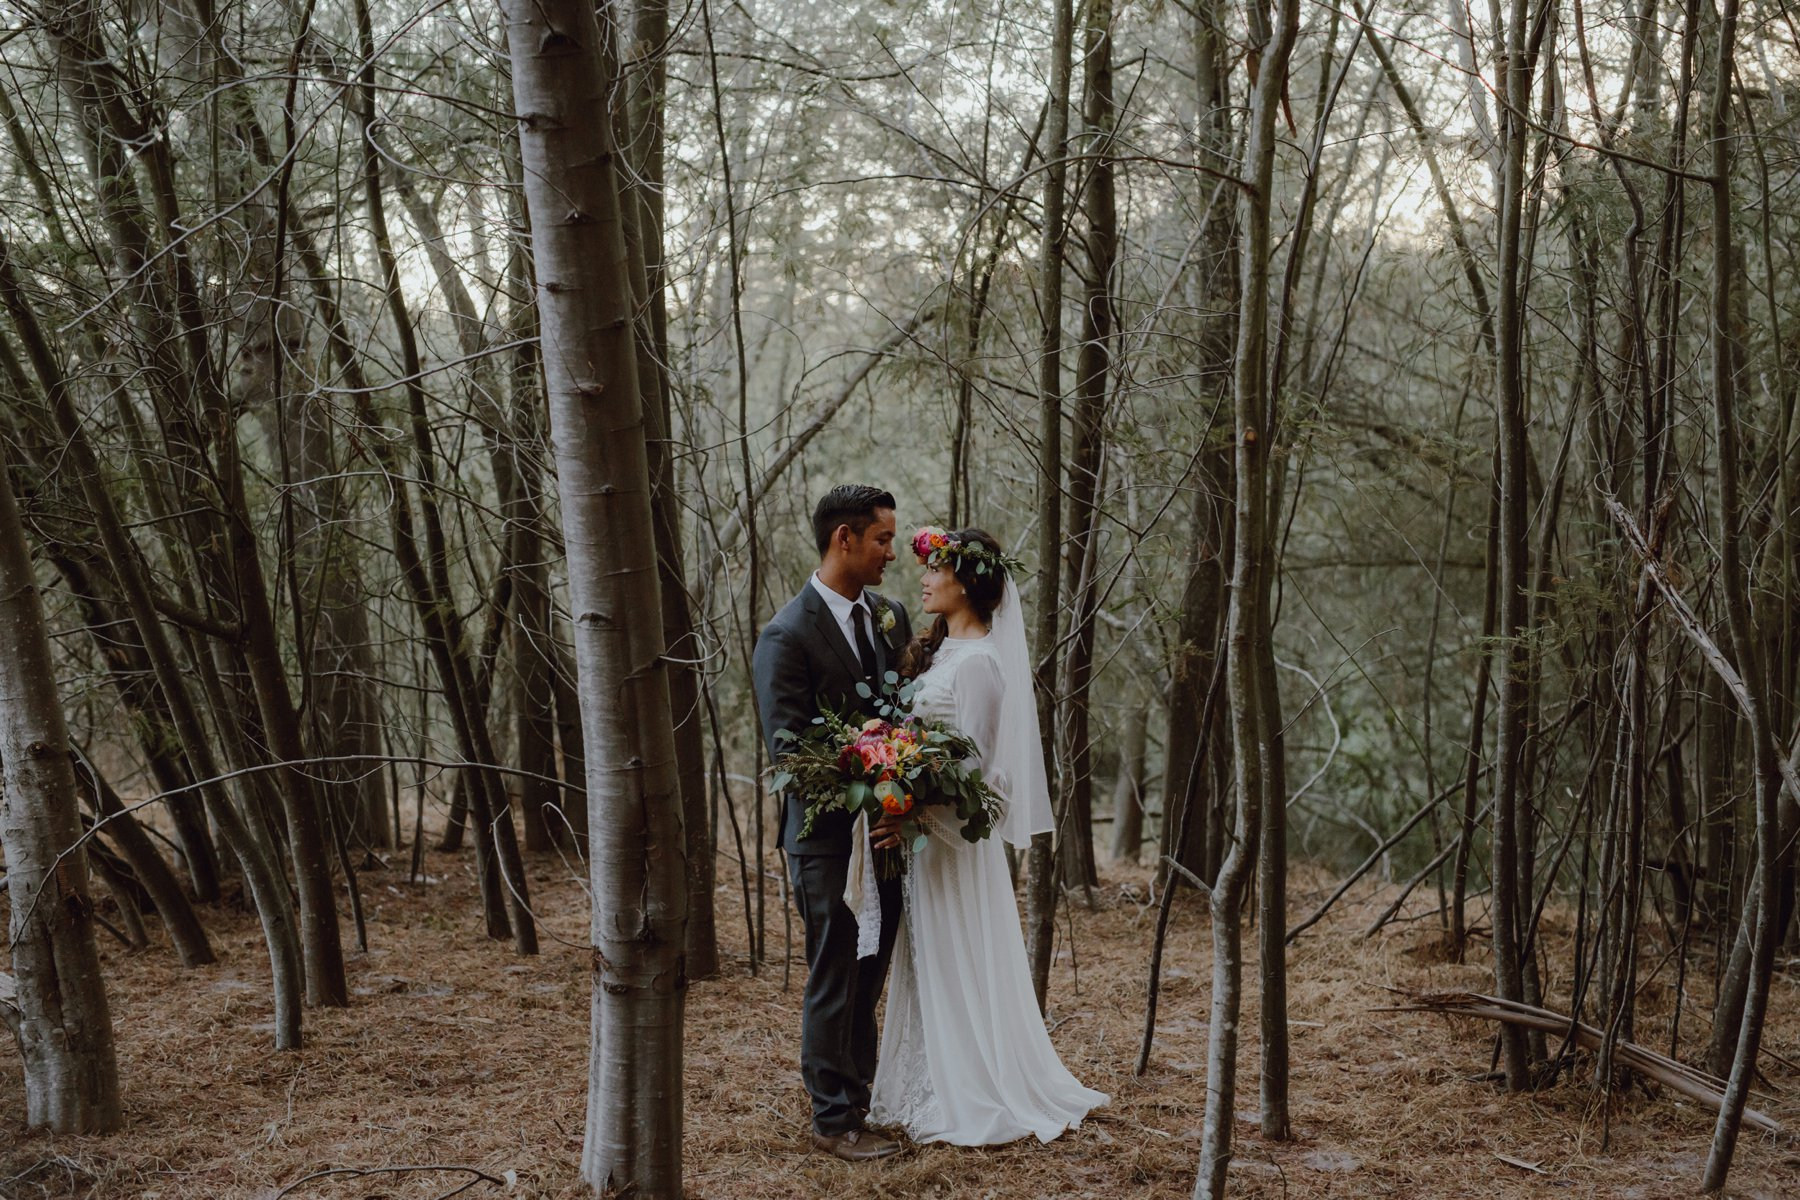 Wedding photo at Sand Rock Farm